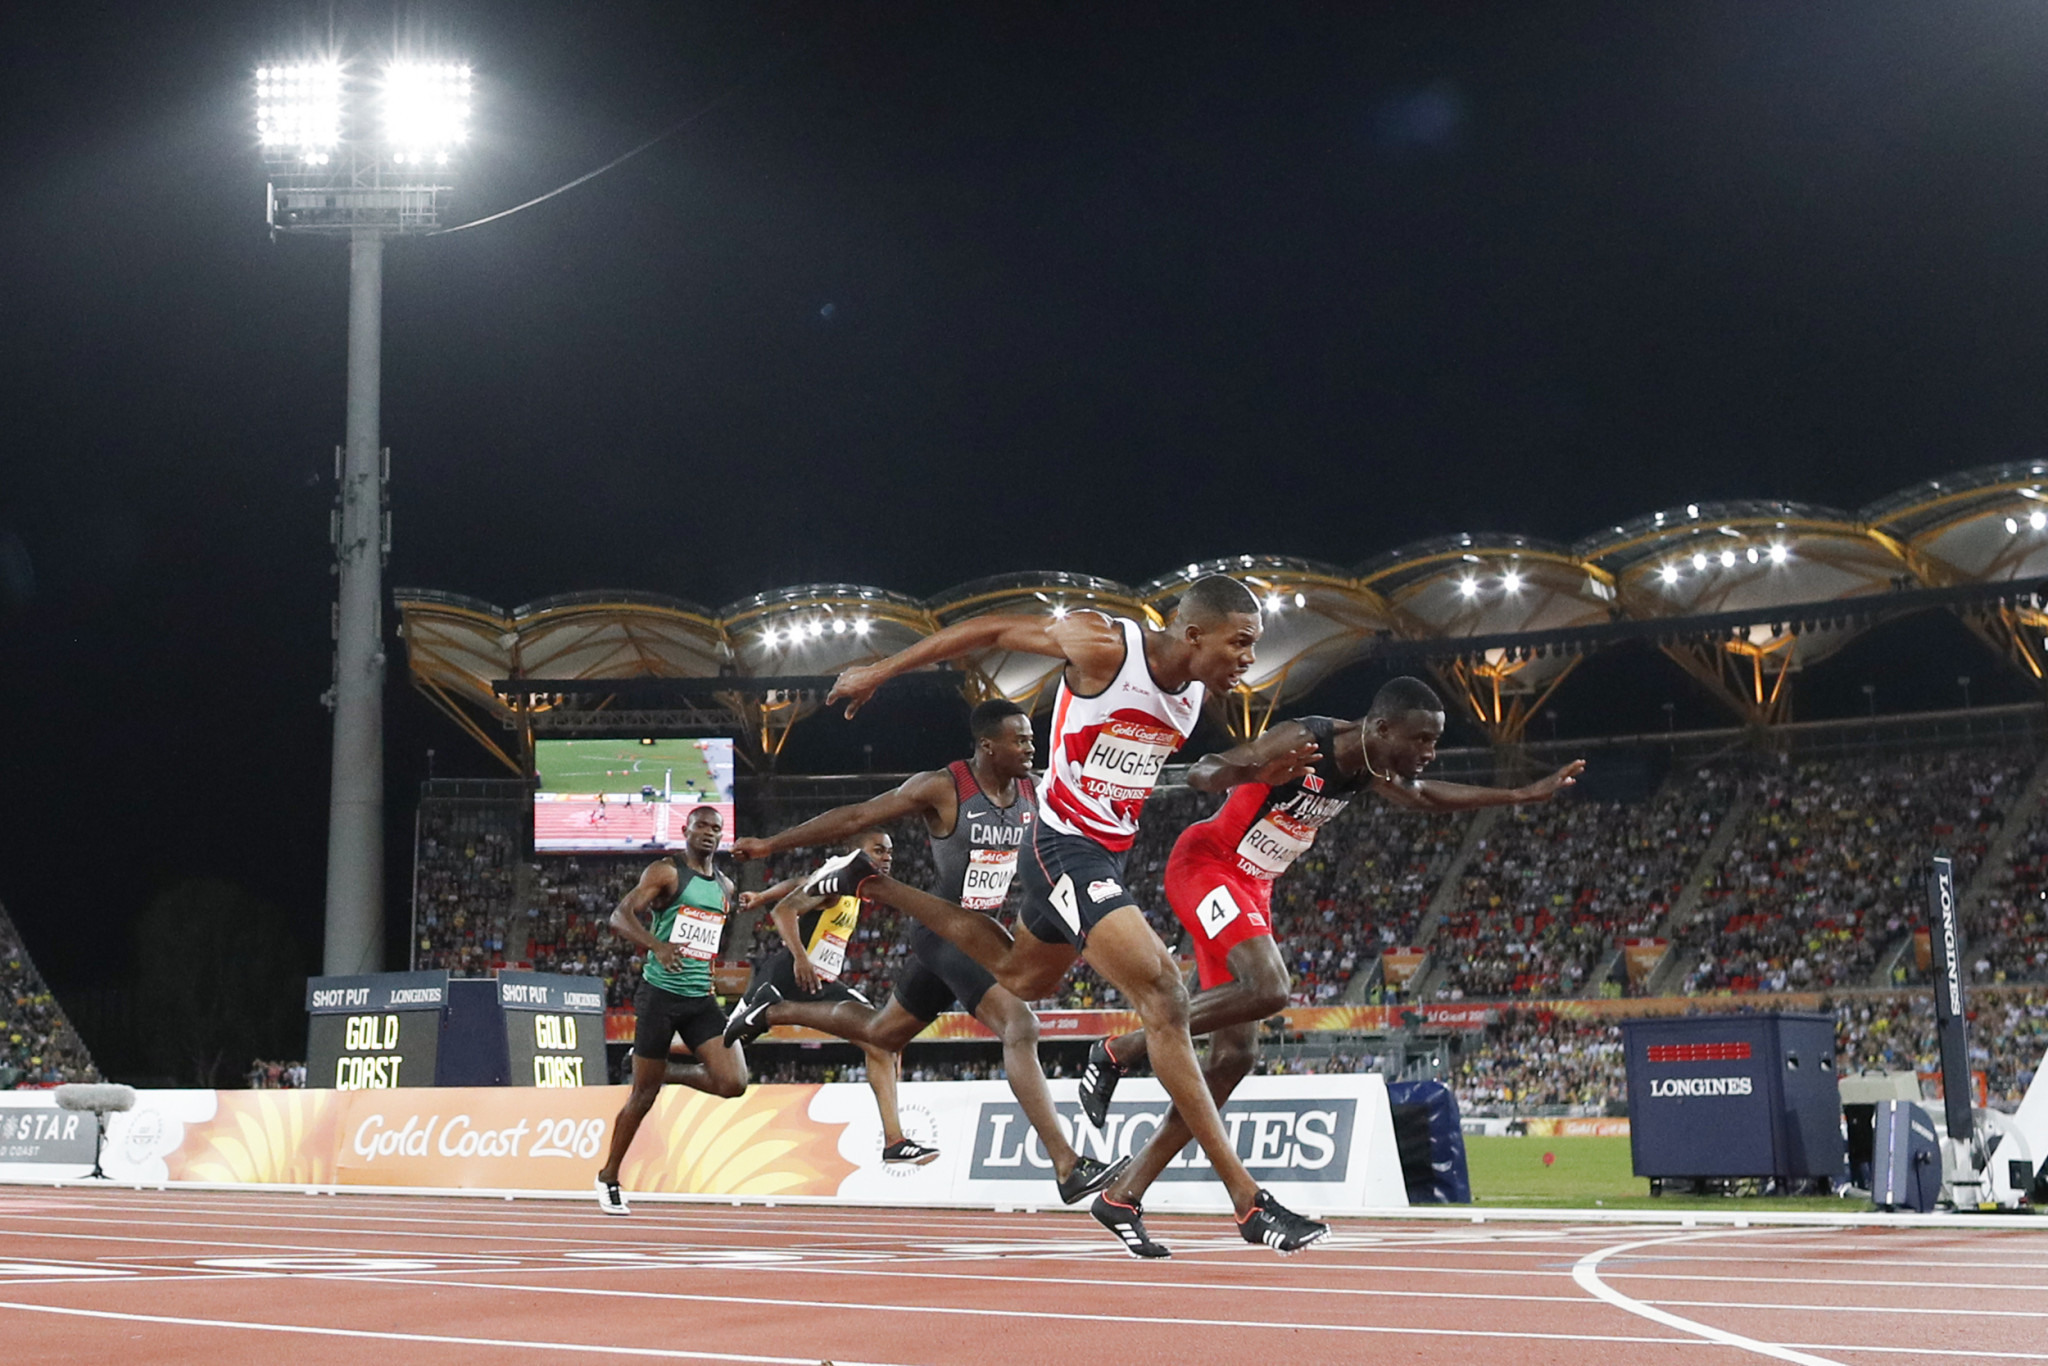 Richards wins men's 200m title at Gold Coast 2018 after Hughes' disqualification as Miller-Uibo claims women's crown